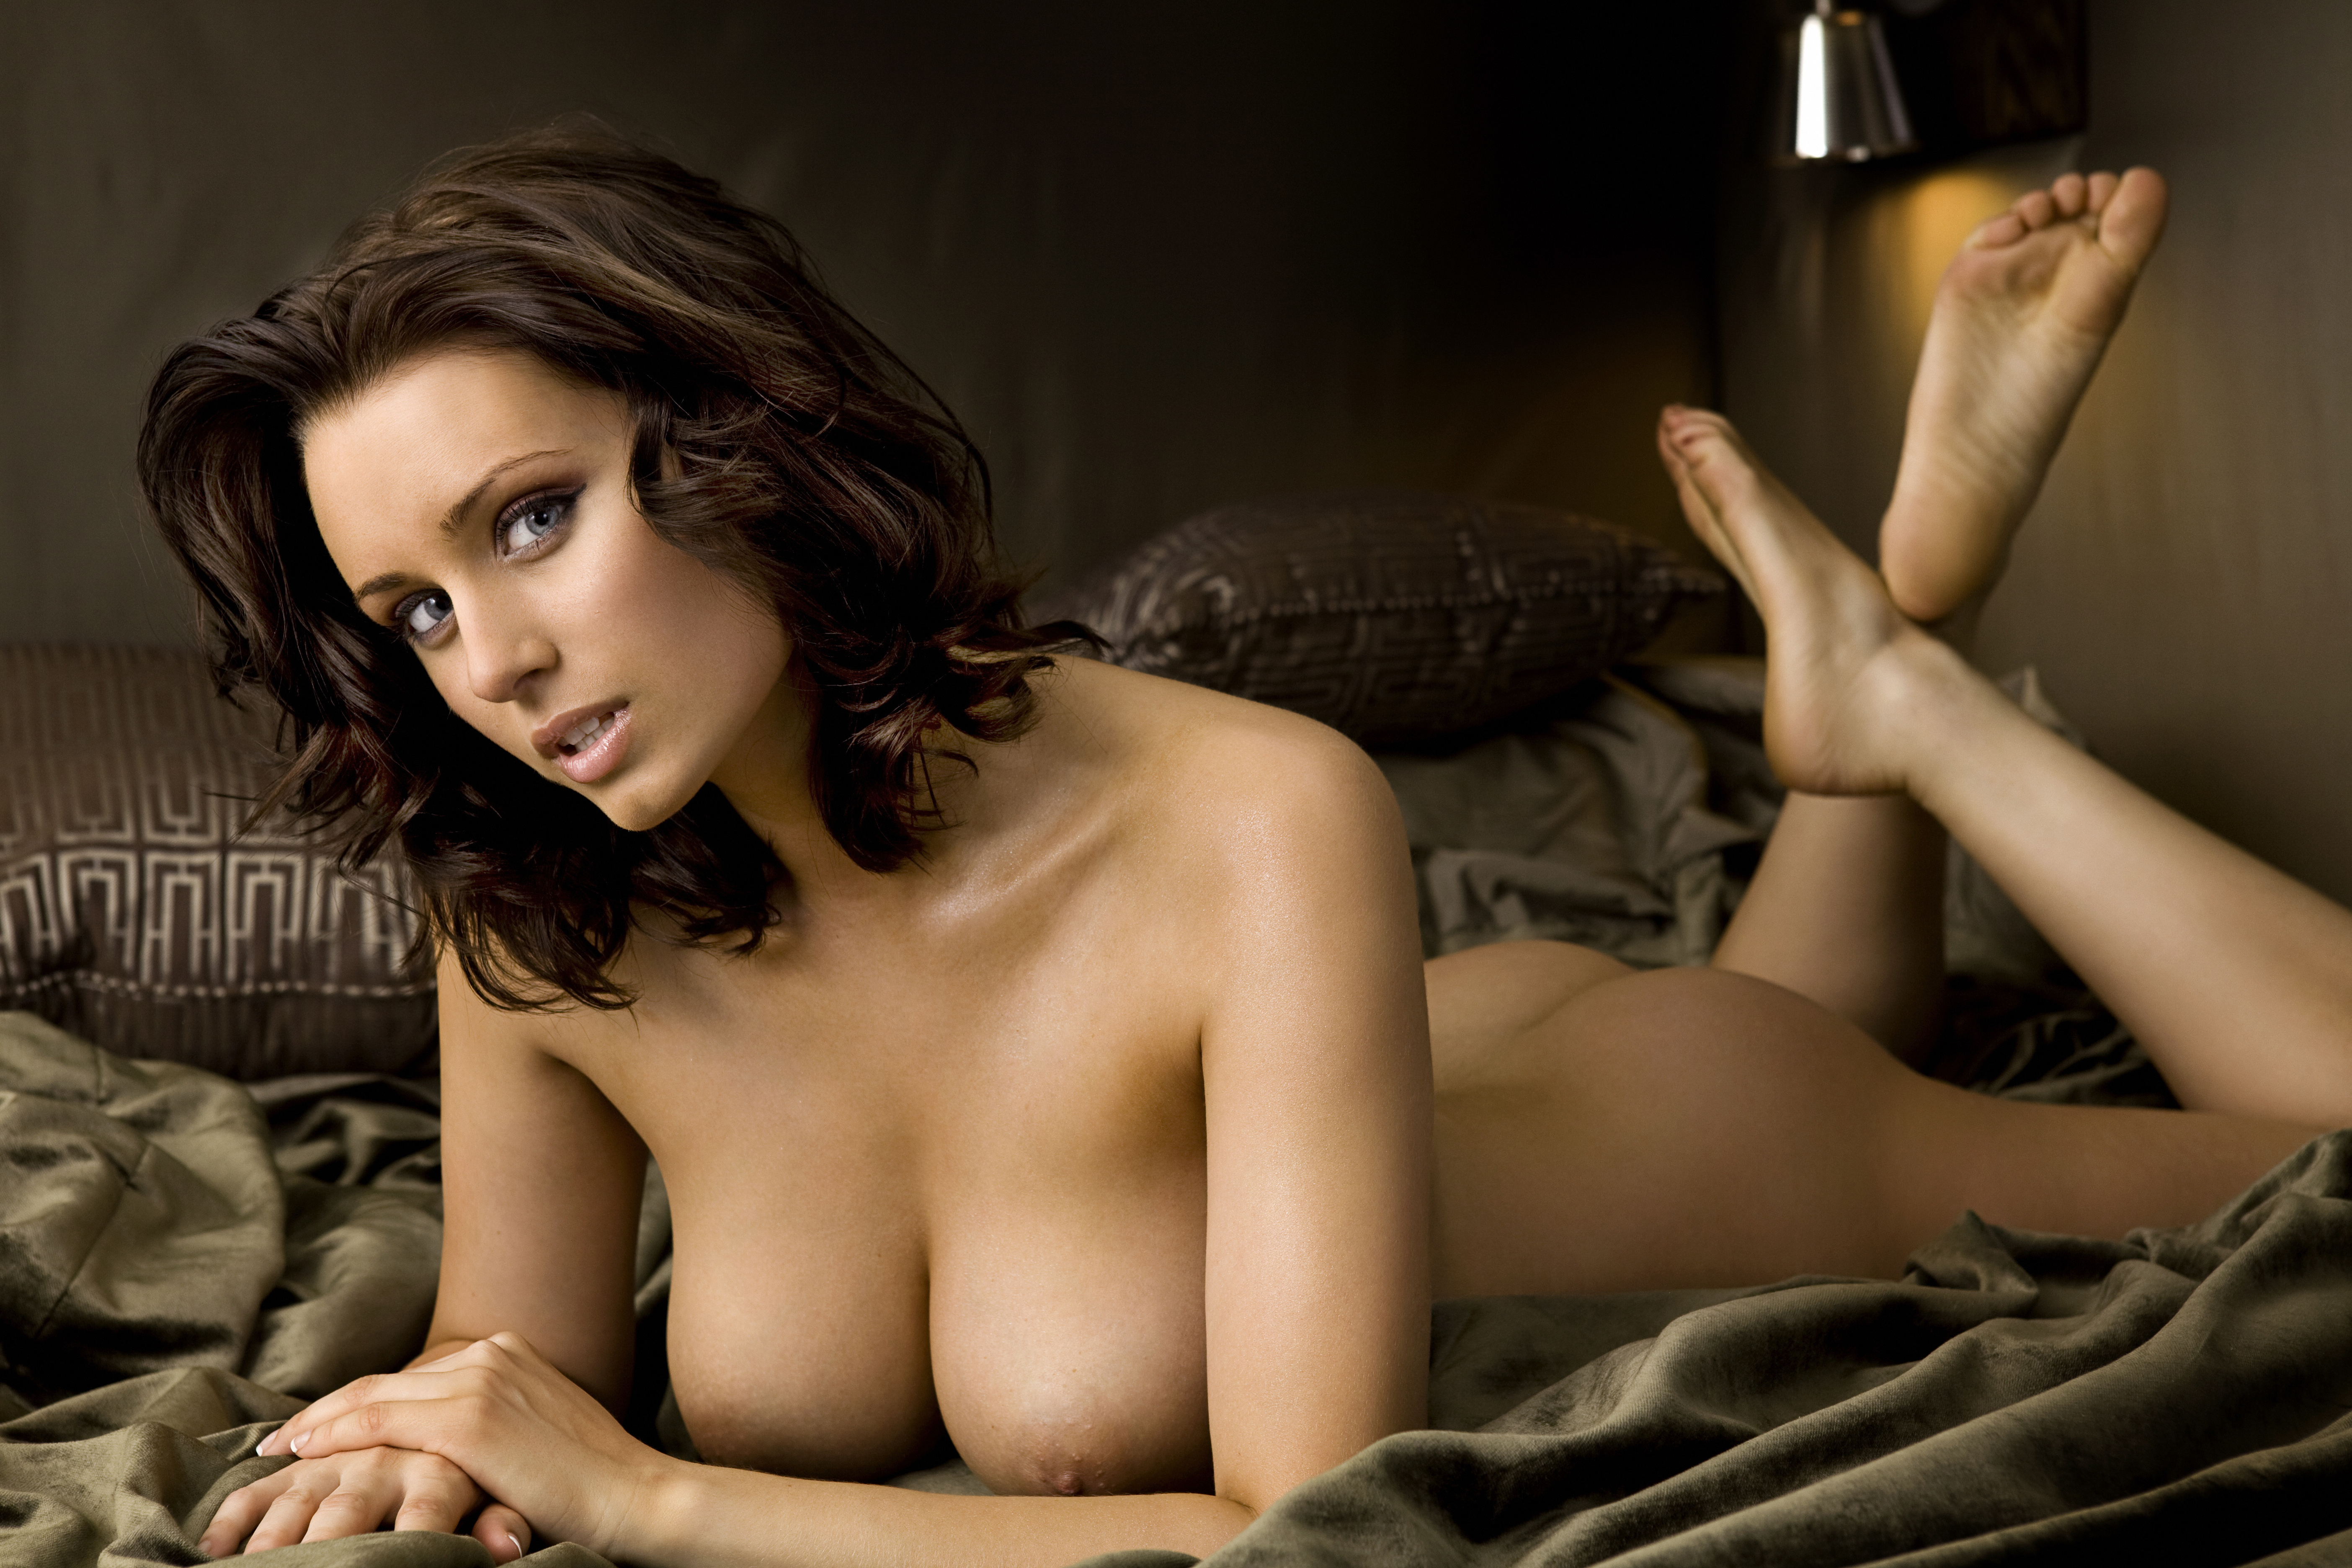 Sammy Braddy With The Boobs Out Porn Pic